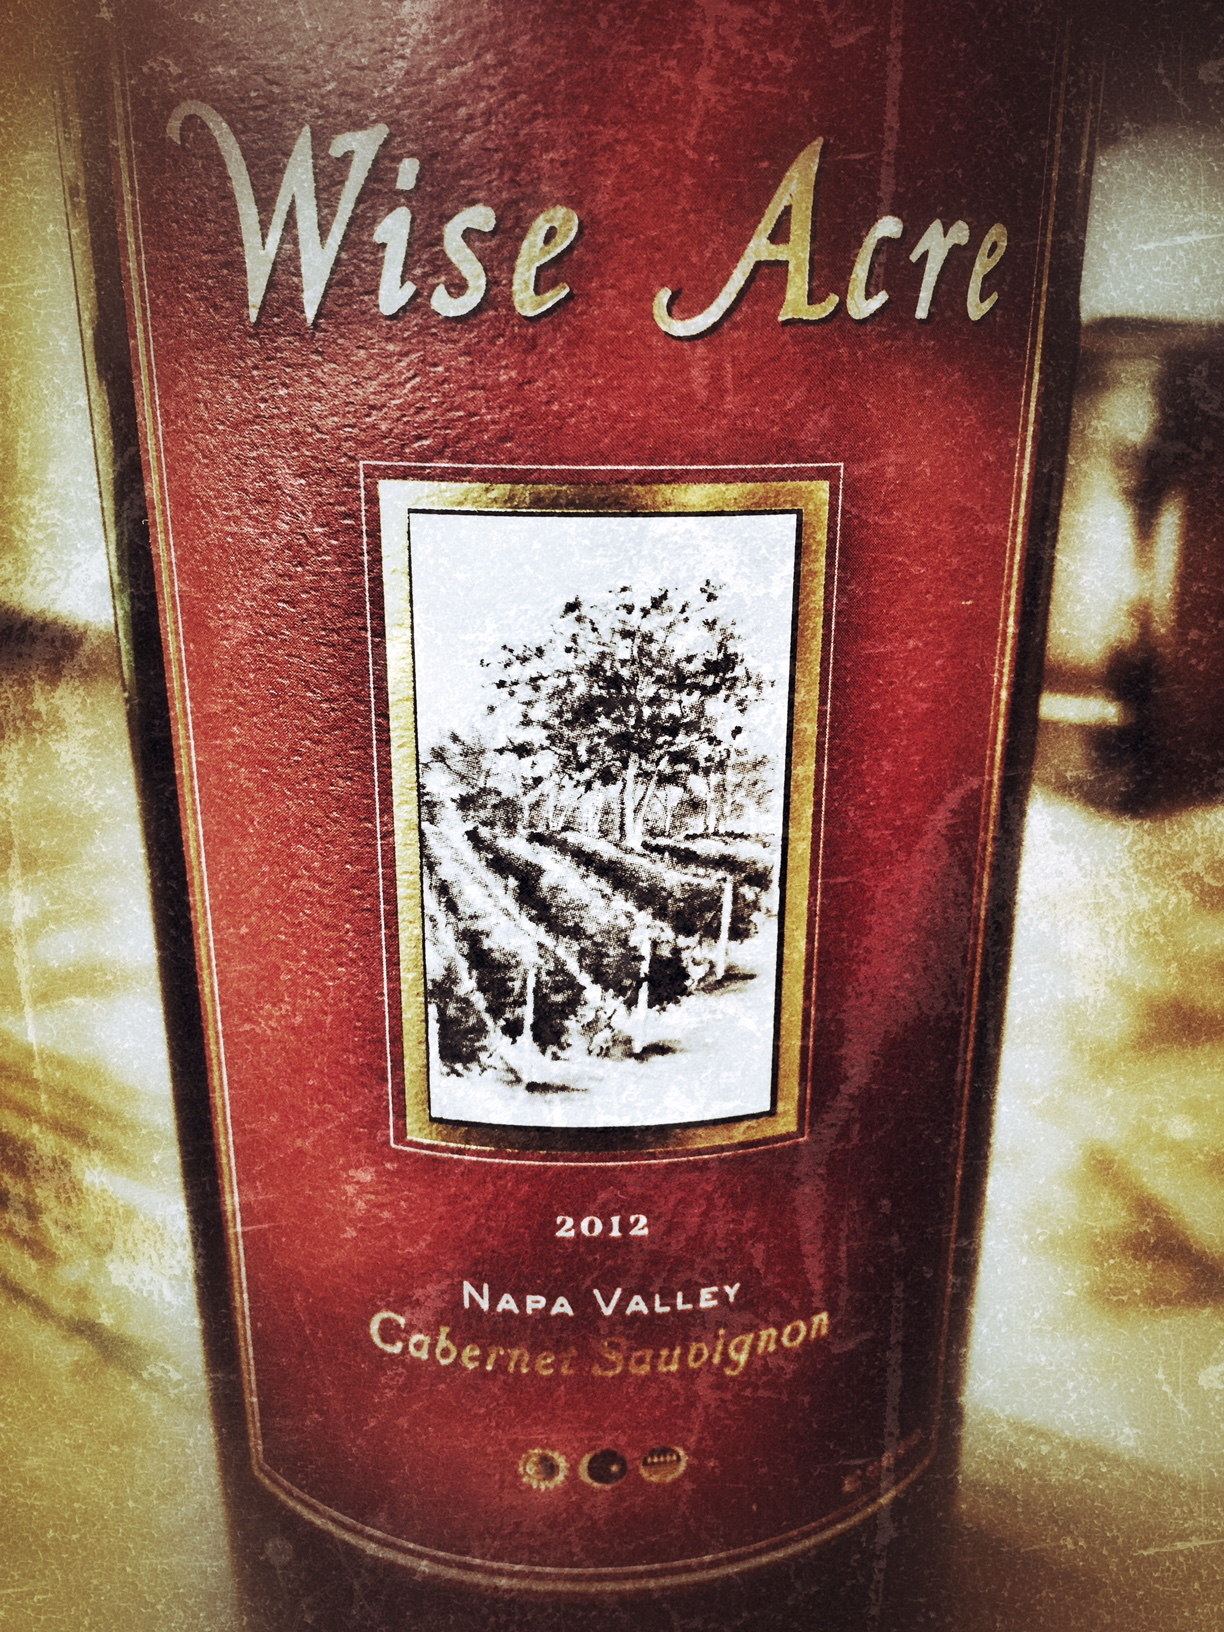 WiseAcre Cabernet Sauvignon Napa Valley by Grace Family 2012,  () from The BPW - Merchants of rare and fine wines.